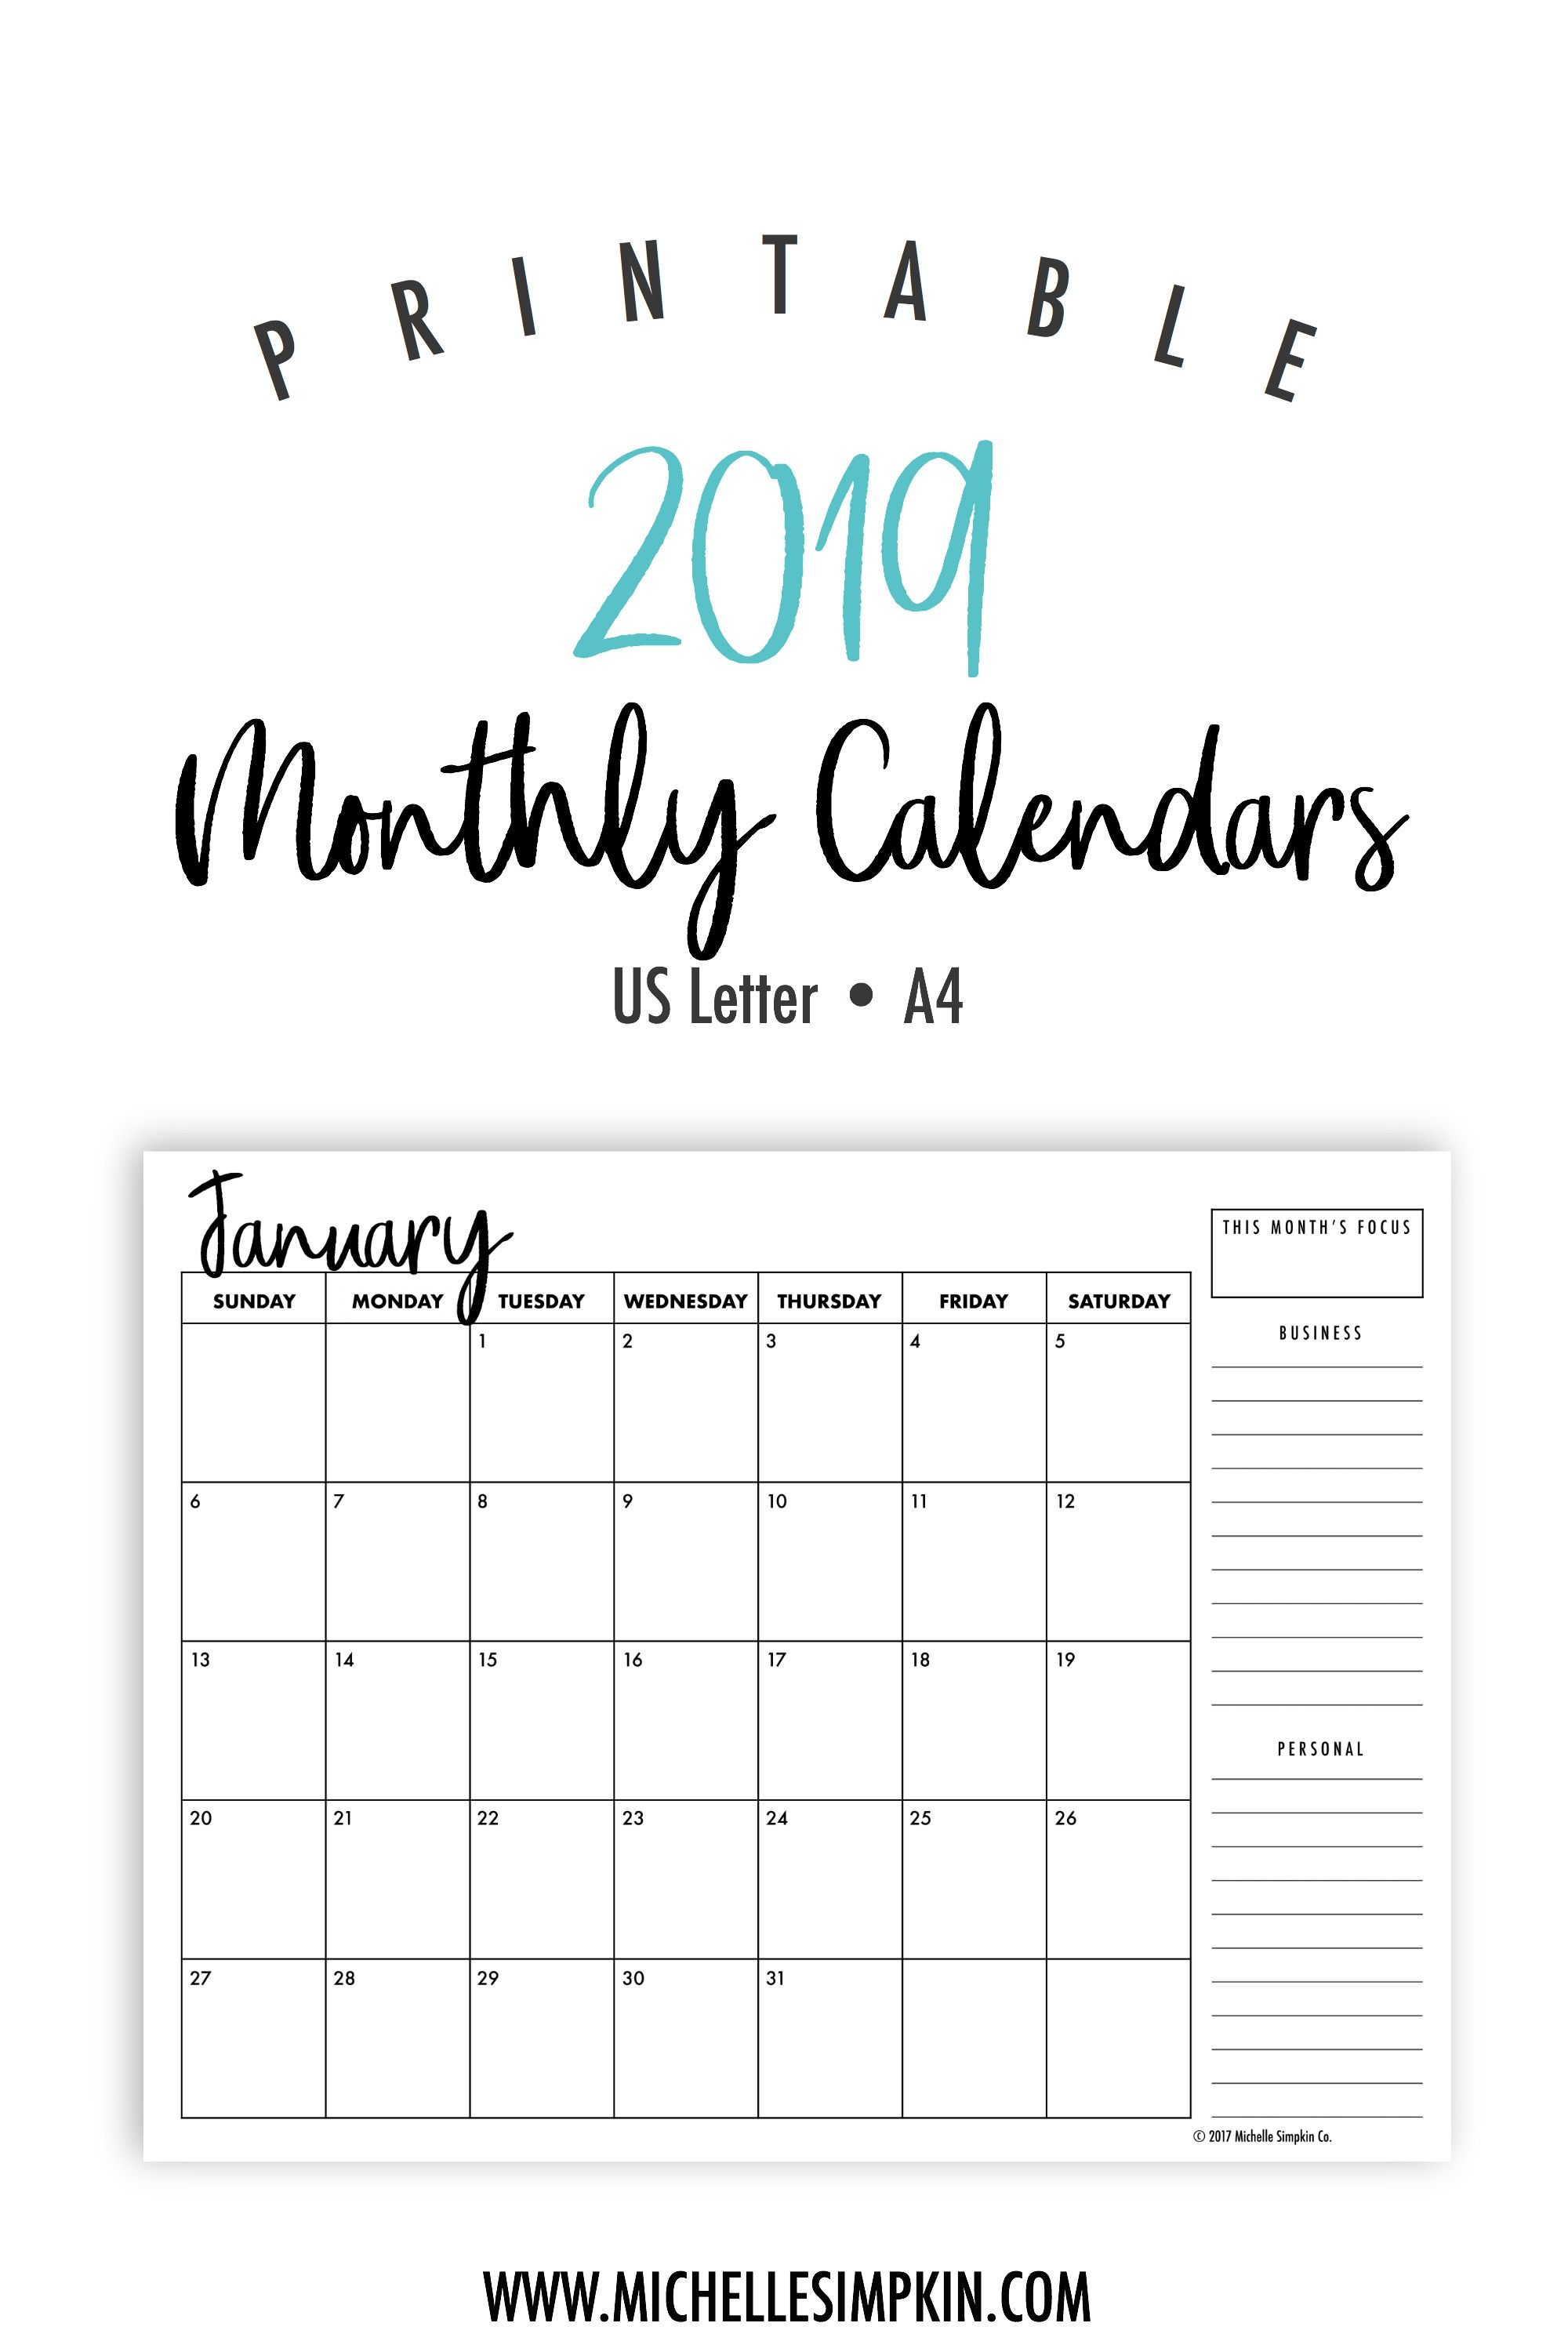 A4 Year Calendar 2019 With Printable Monthly Calendars Landscape US Letter